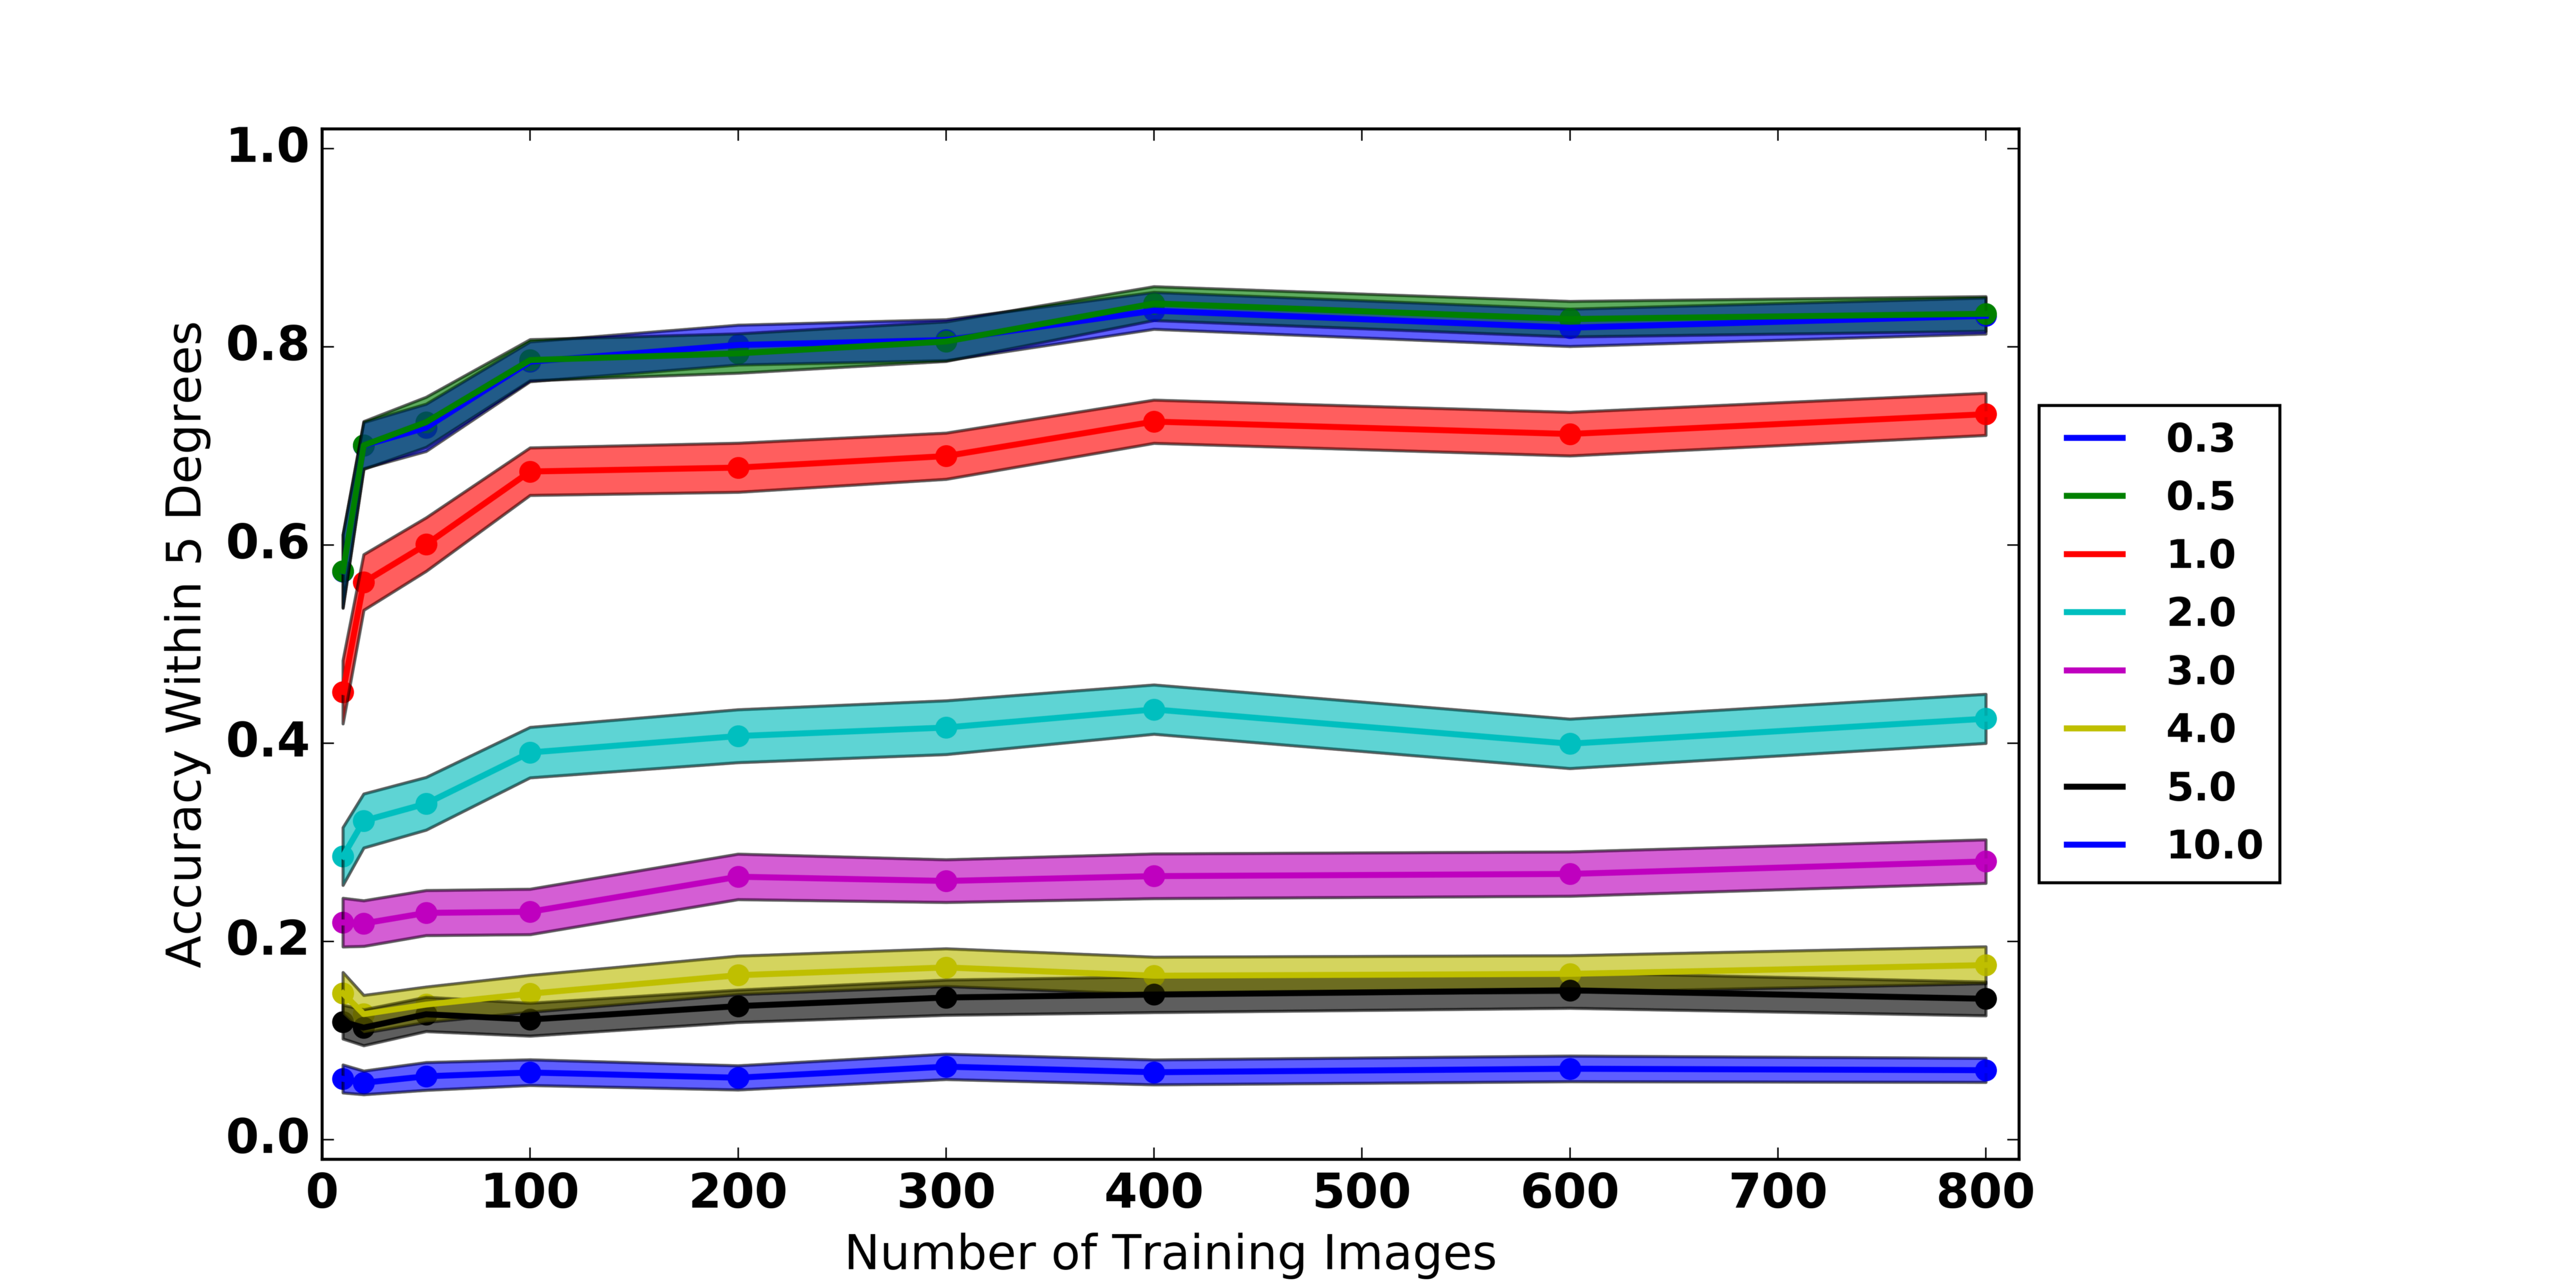 Quantifying the Effects of Resolution on Image